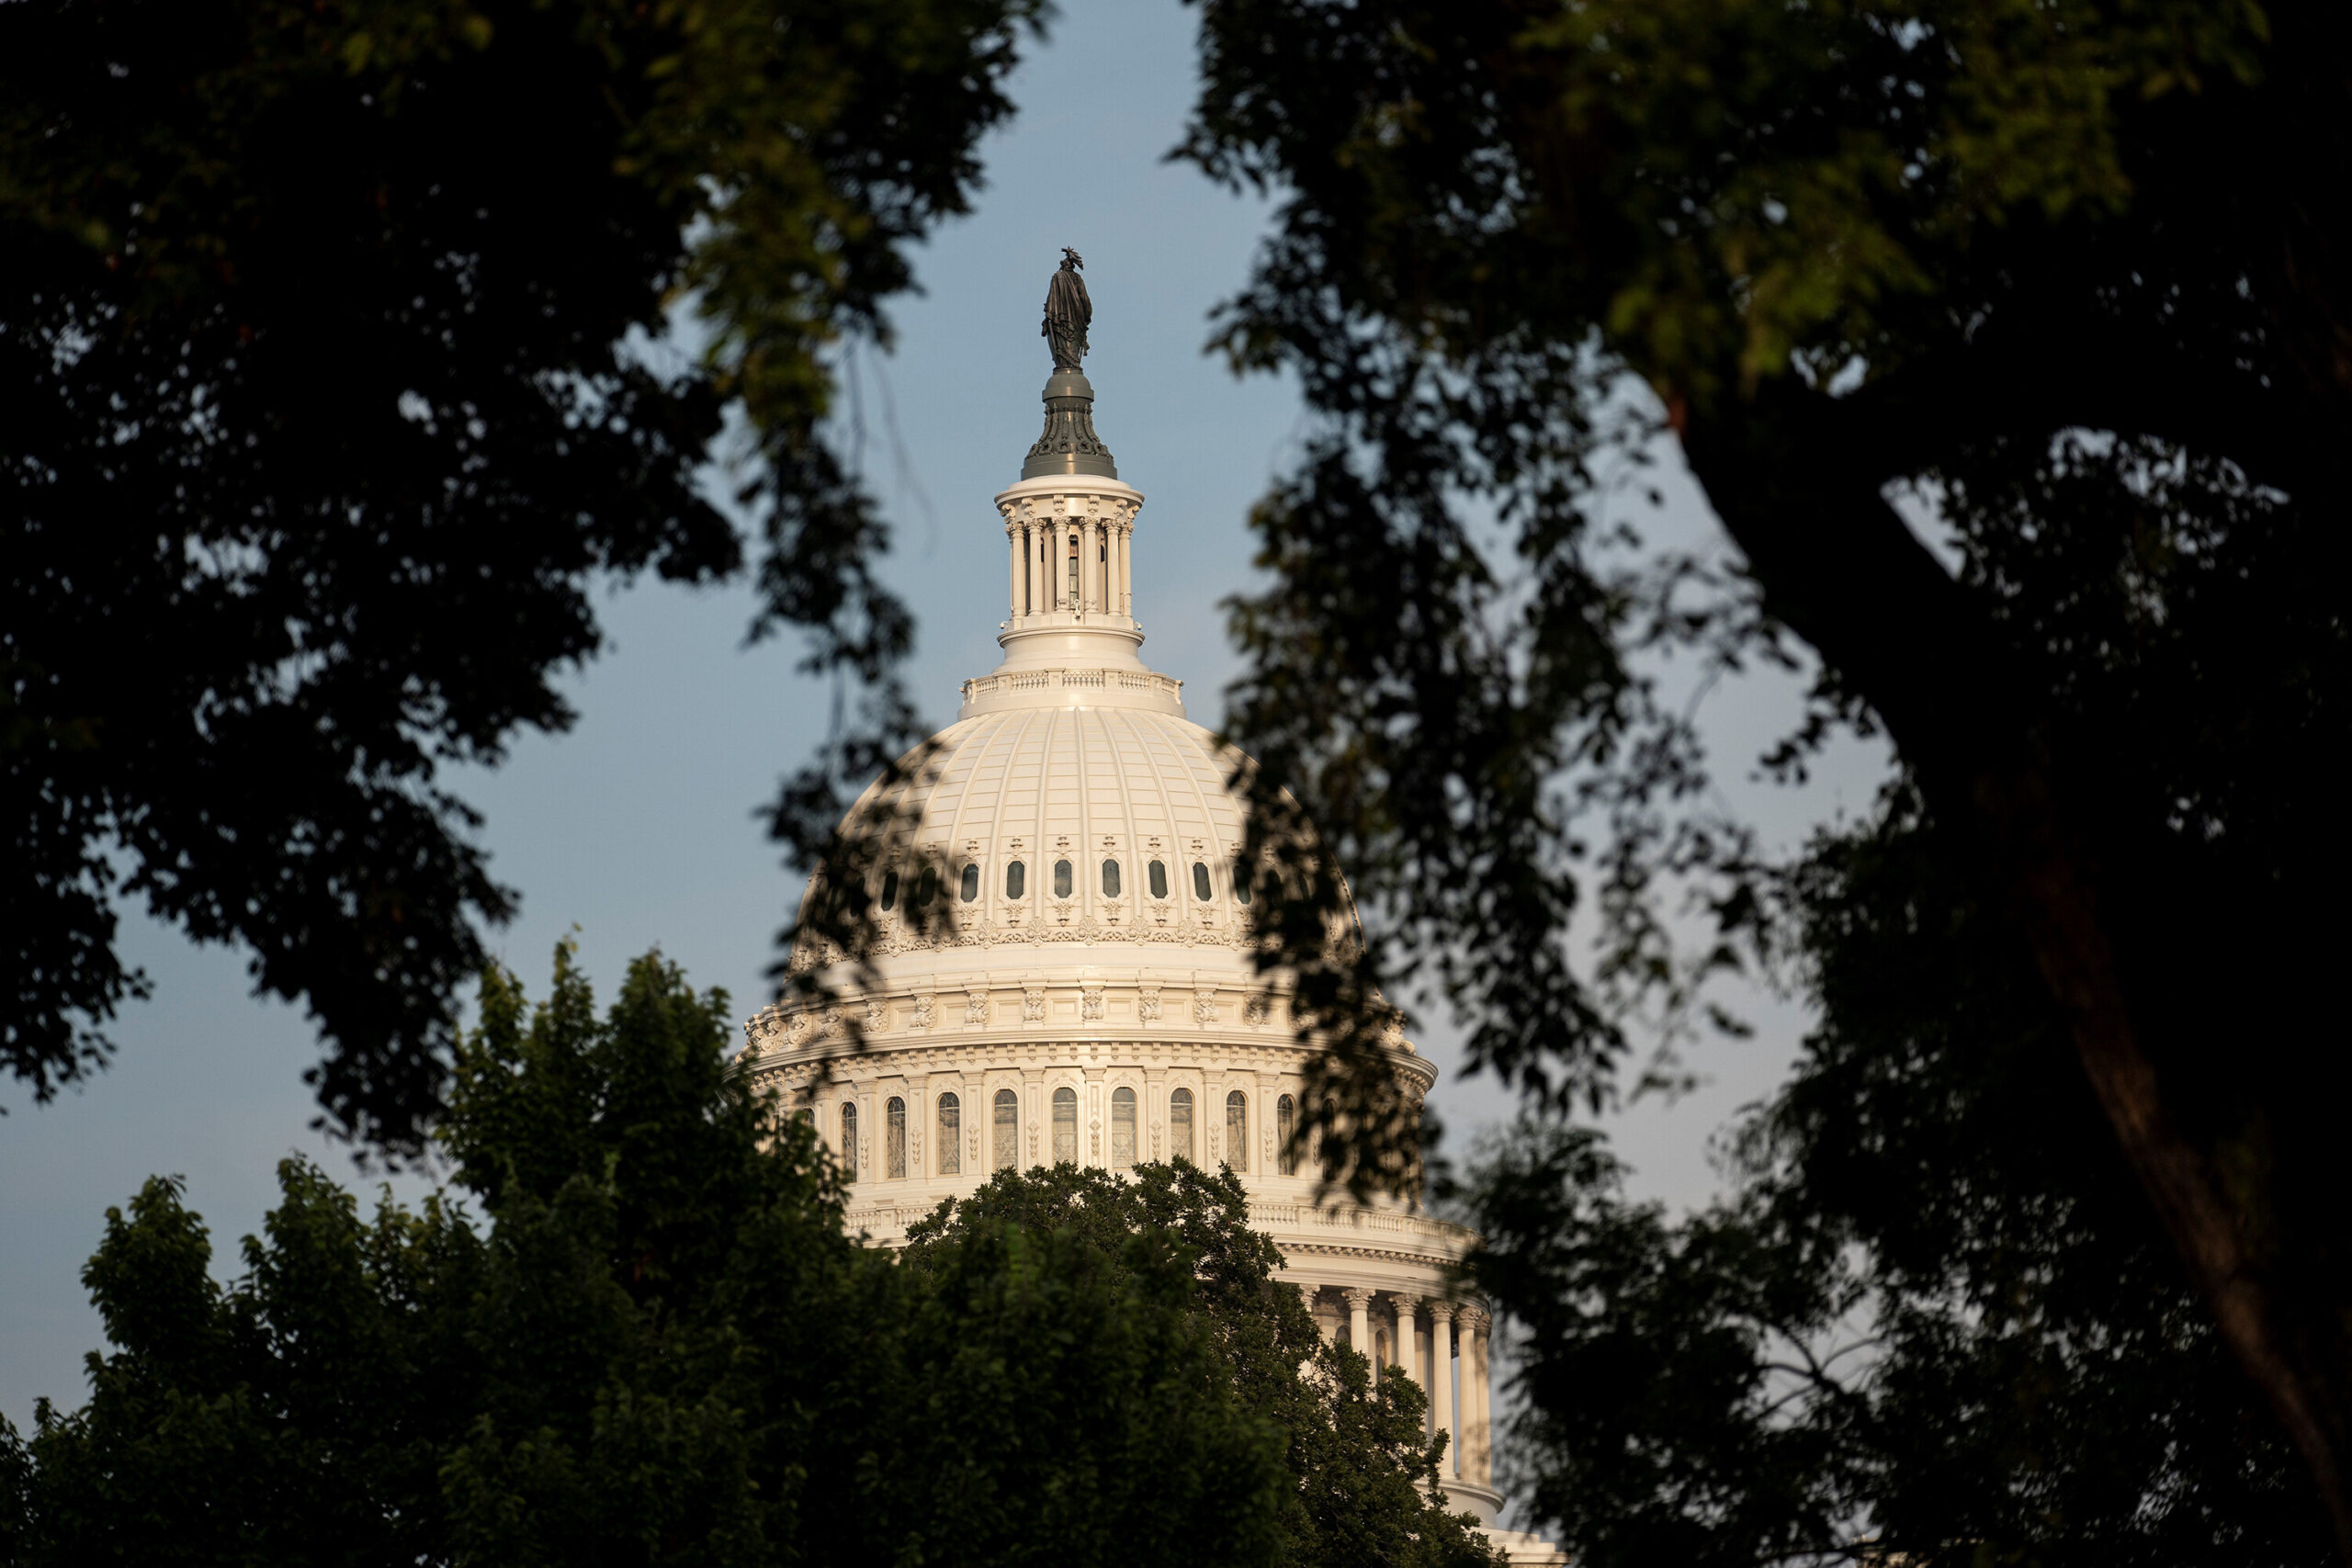 <i>Liu Jie/Xinhua/Getty Images</i><br/>Republicans and Democrats in Washington are gearing up for their occasional fight over raising the US debt limit.